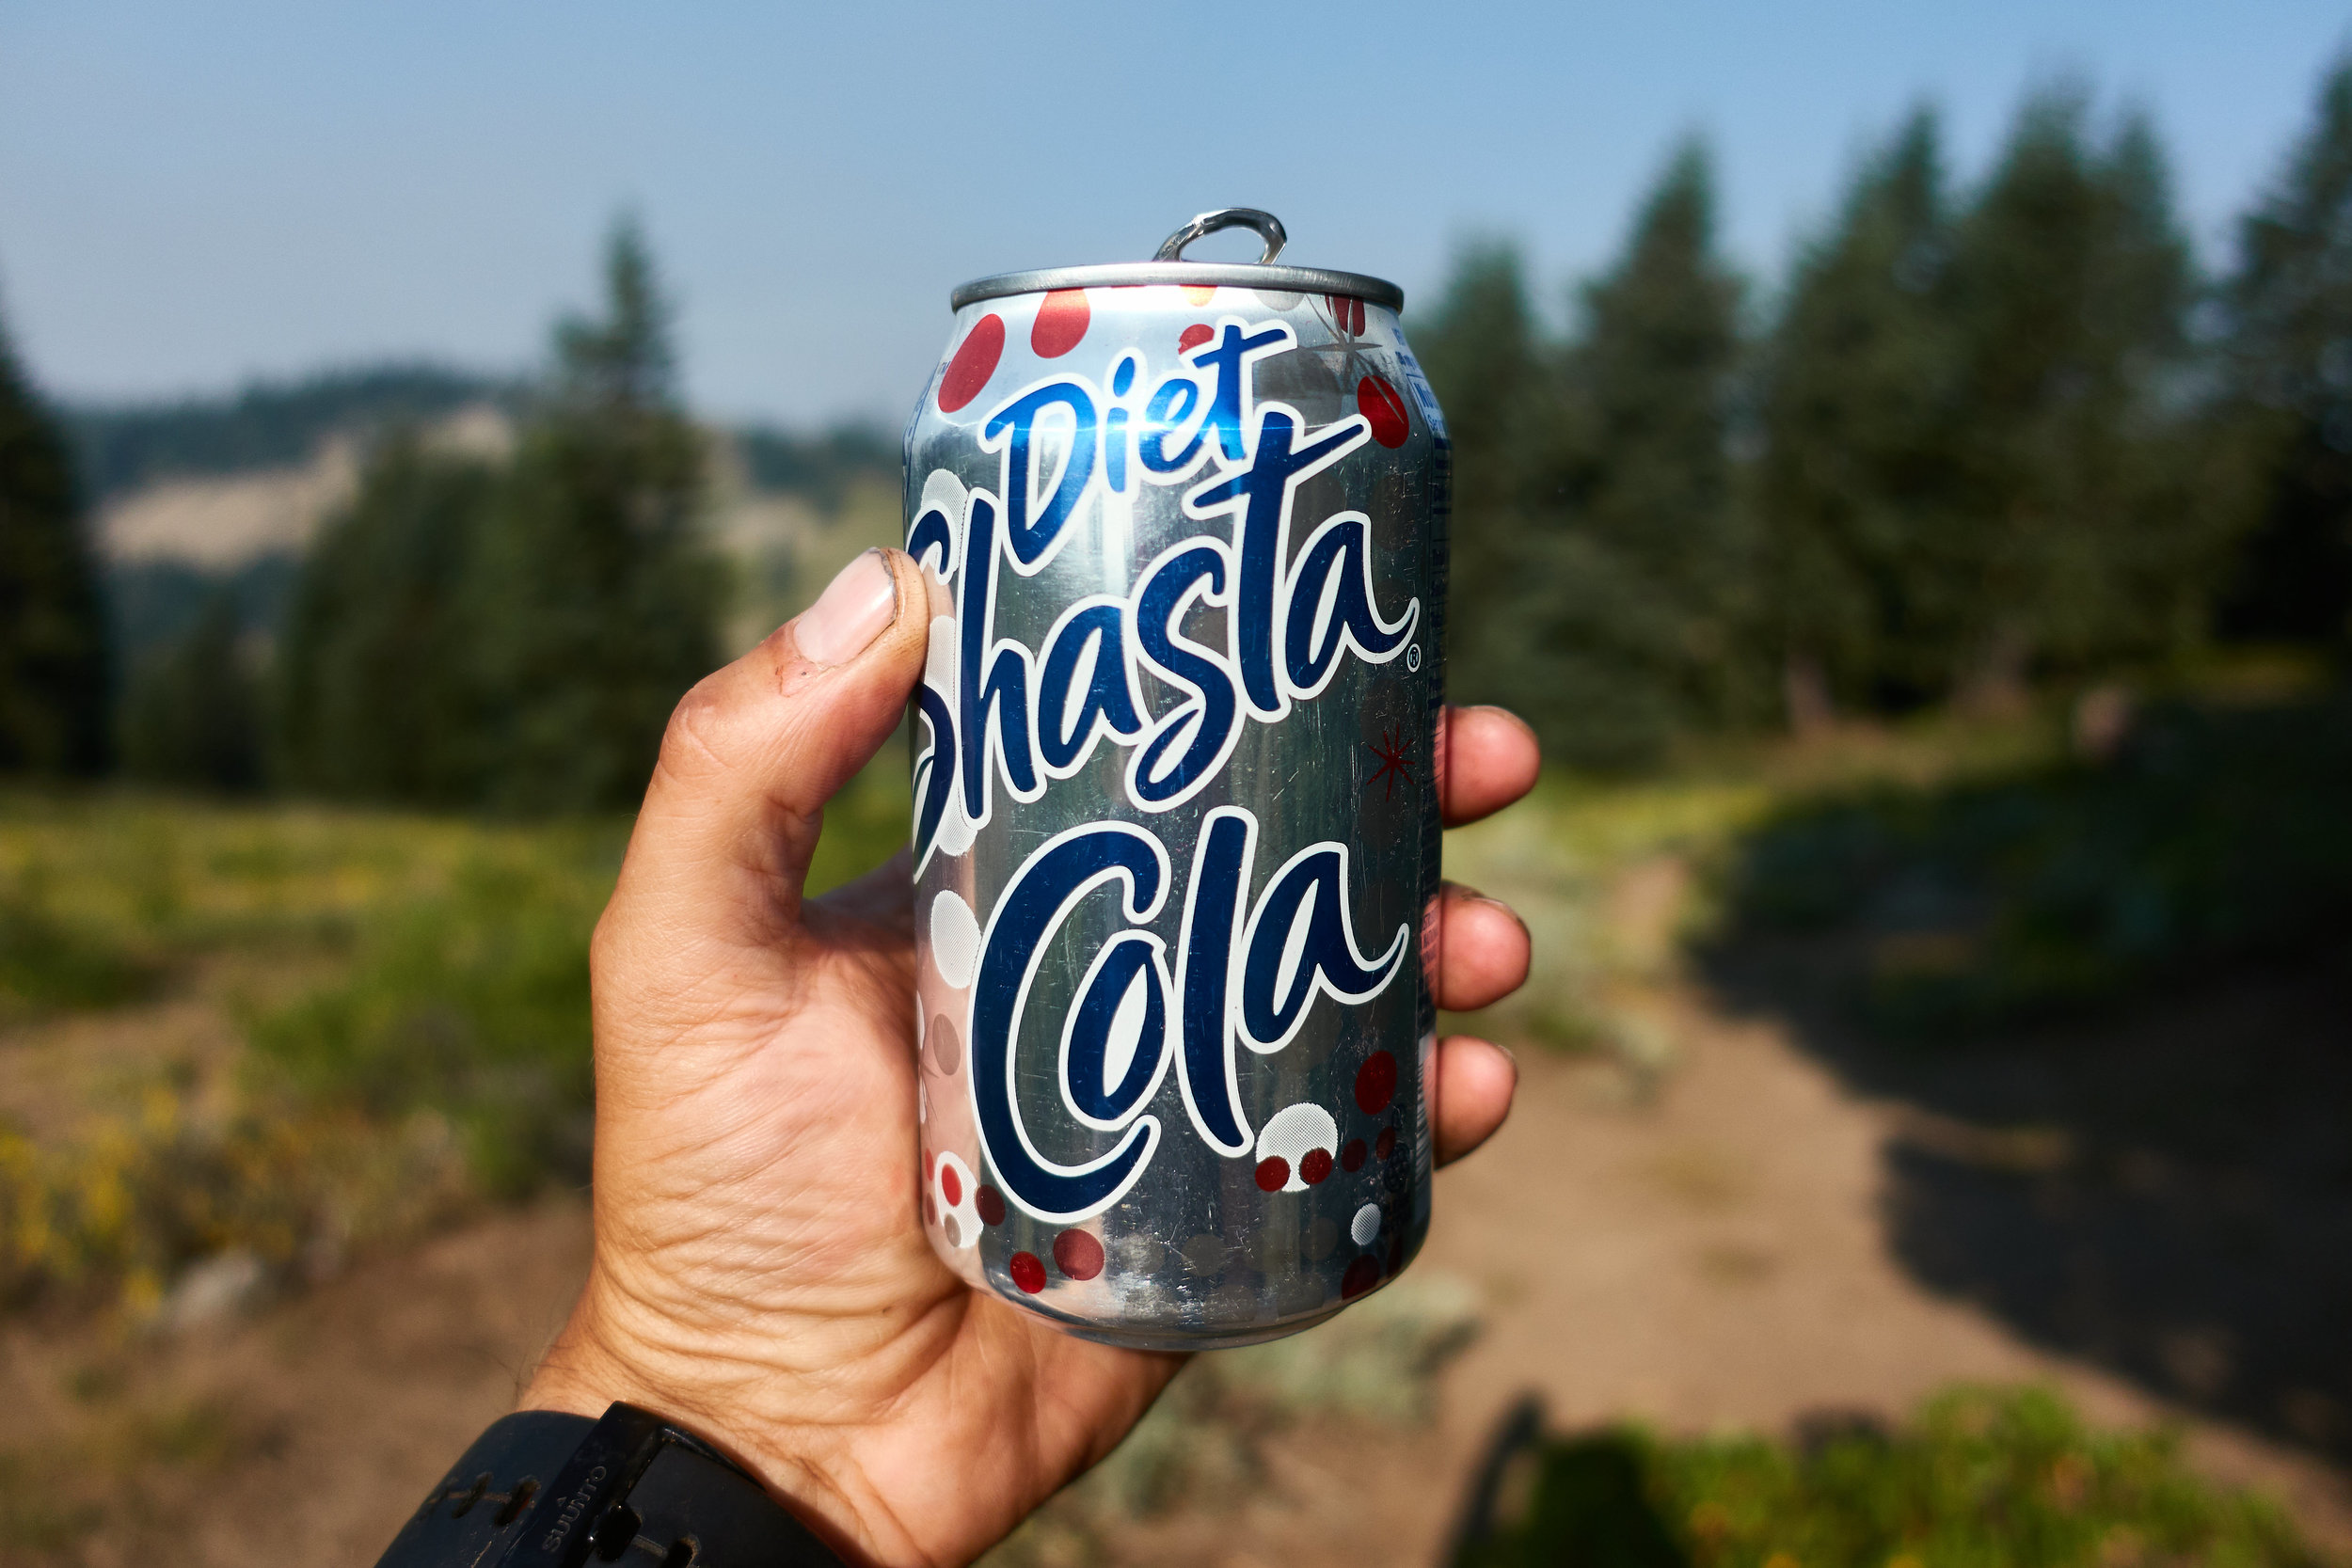 Diet Shasta Cola!